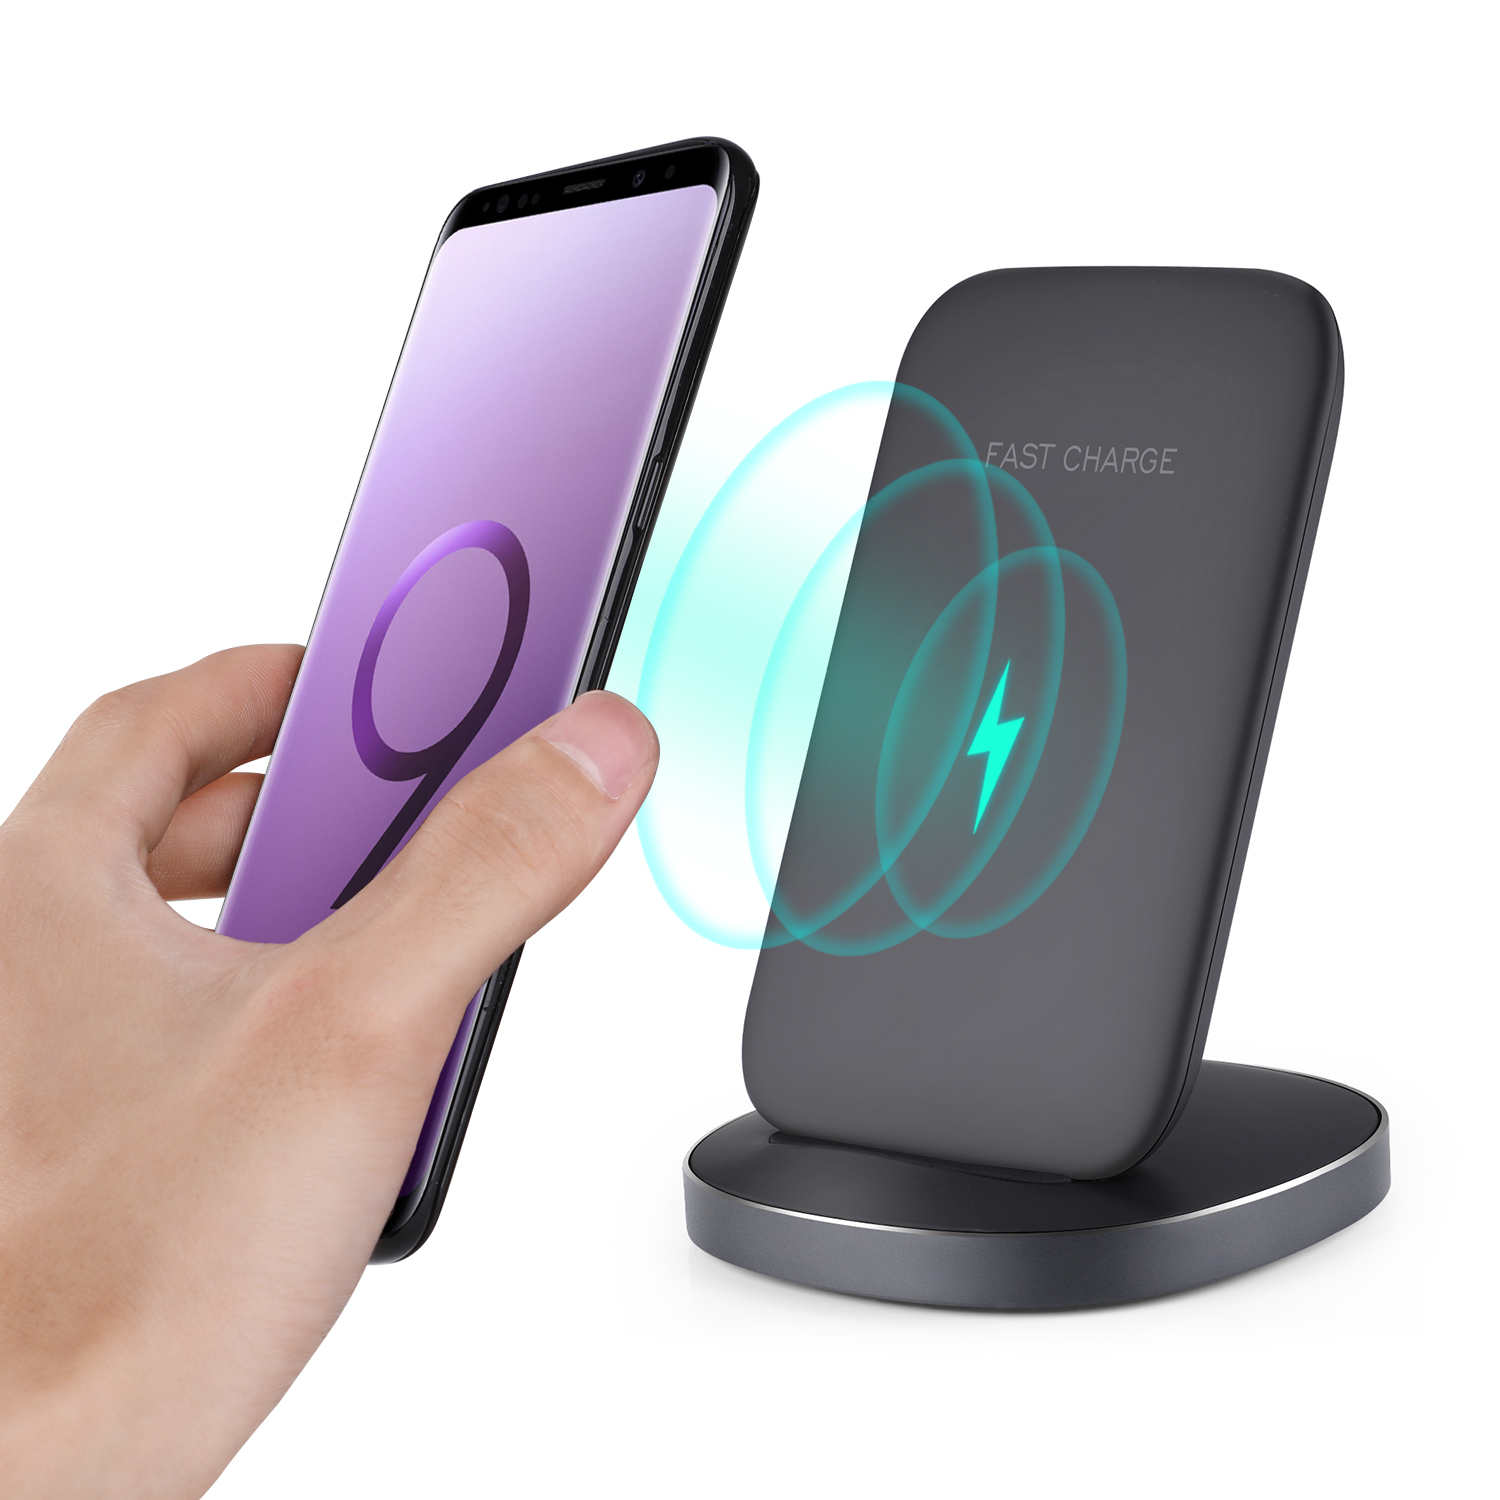 induktive ladestation wireless ladeger t qi charger iphone xs max xr xs x ebay. Black Bedroom Furniture Sets. Home Design Ideas